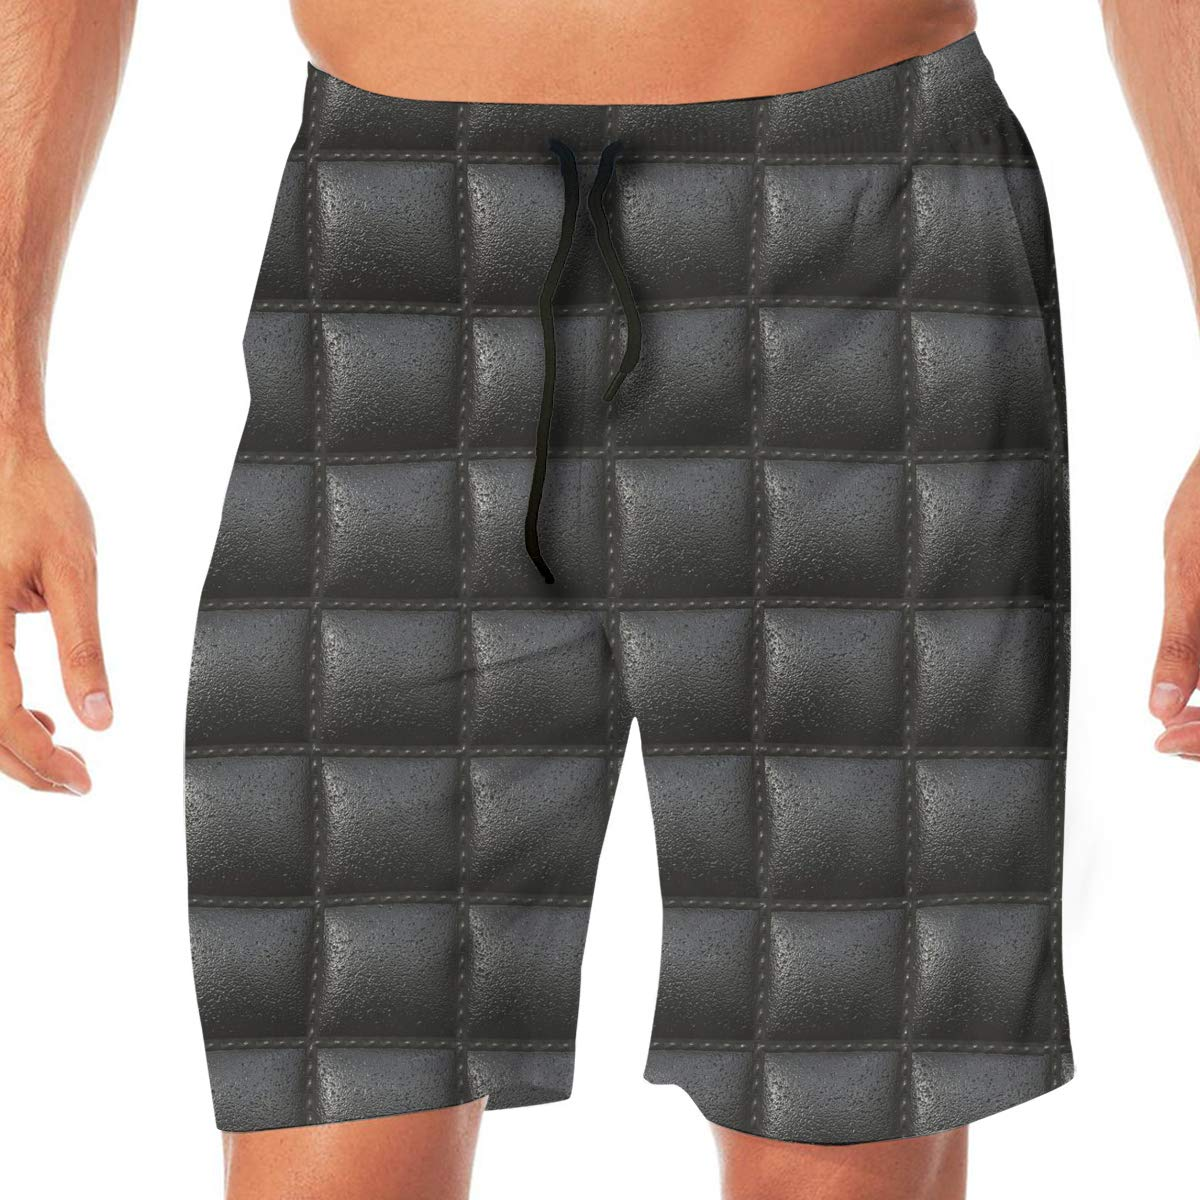 XXL L Cbyan Black Cell Leather Beach Pants Mens Quick Dry Sports Shorts with Mesh Lining M XL